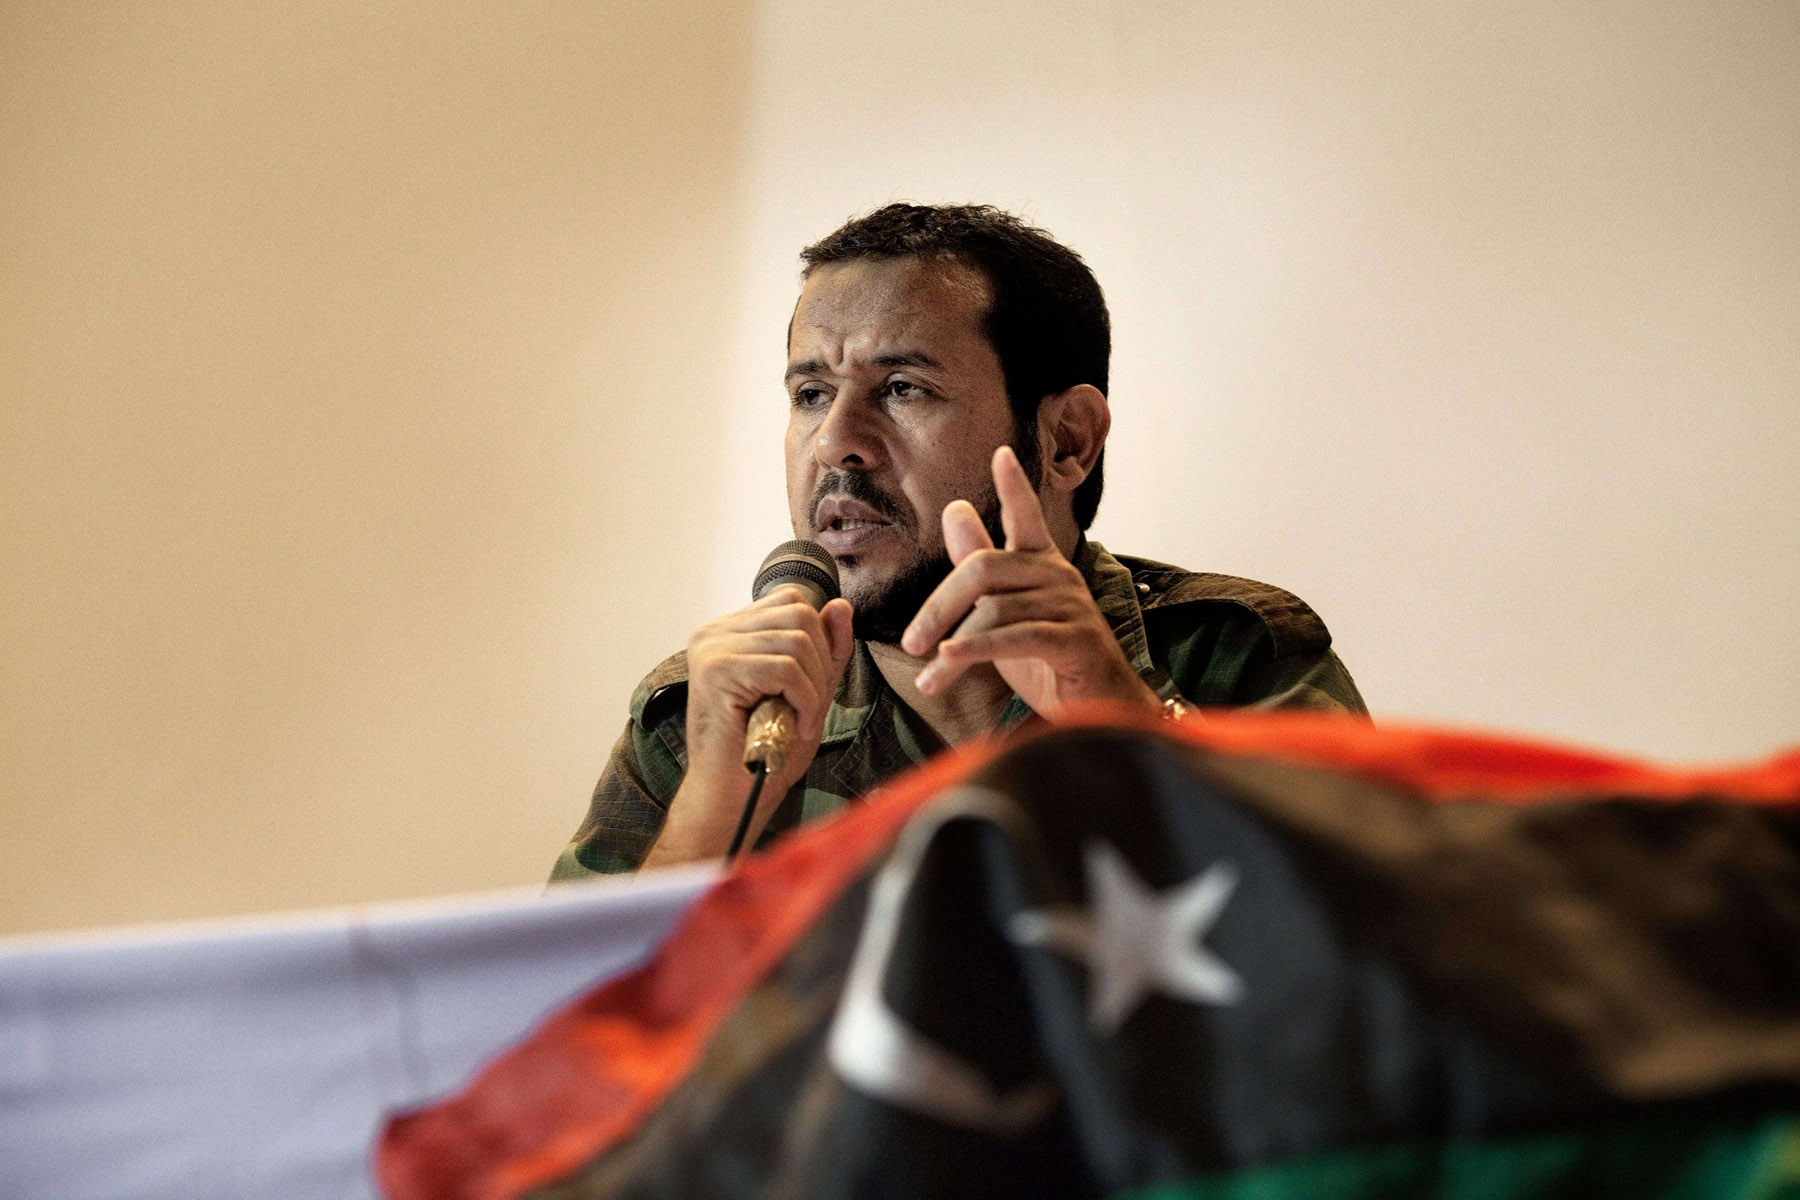 In the crosshairs. A 2011 file picture shows Abdelhakim Belhaj, leader of Libya's pro-Islamist Watan Party, during a public debate at Tripoli University.			  		                   (AFP)